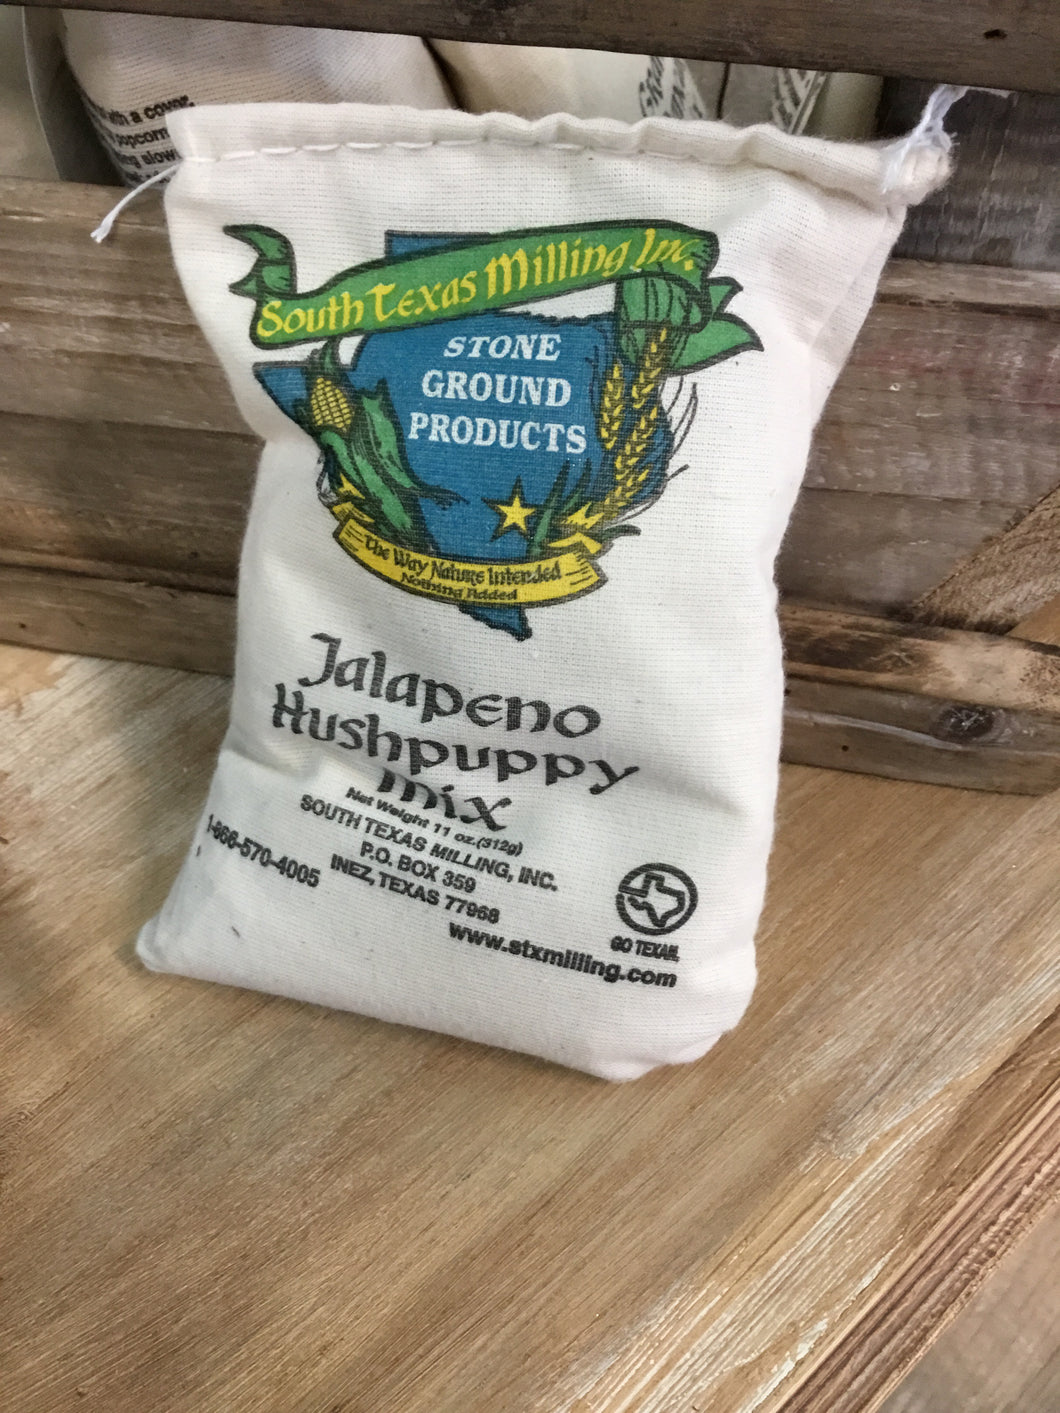 Jalapeno Hushpuppy Mix